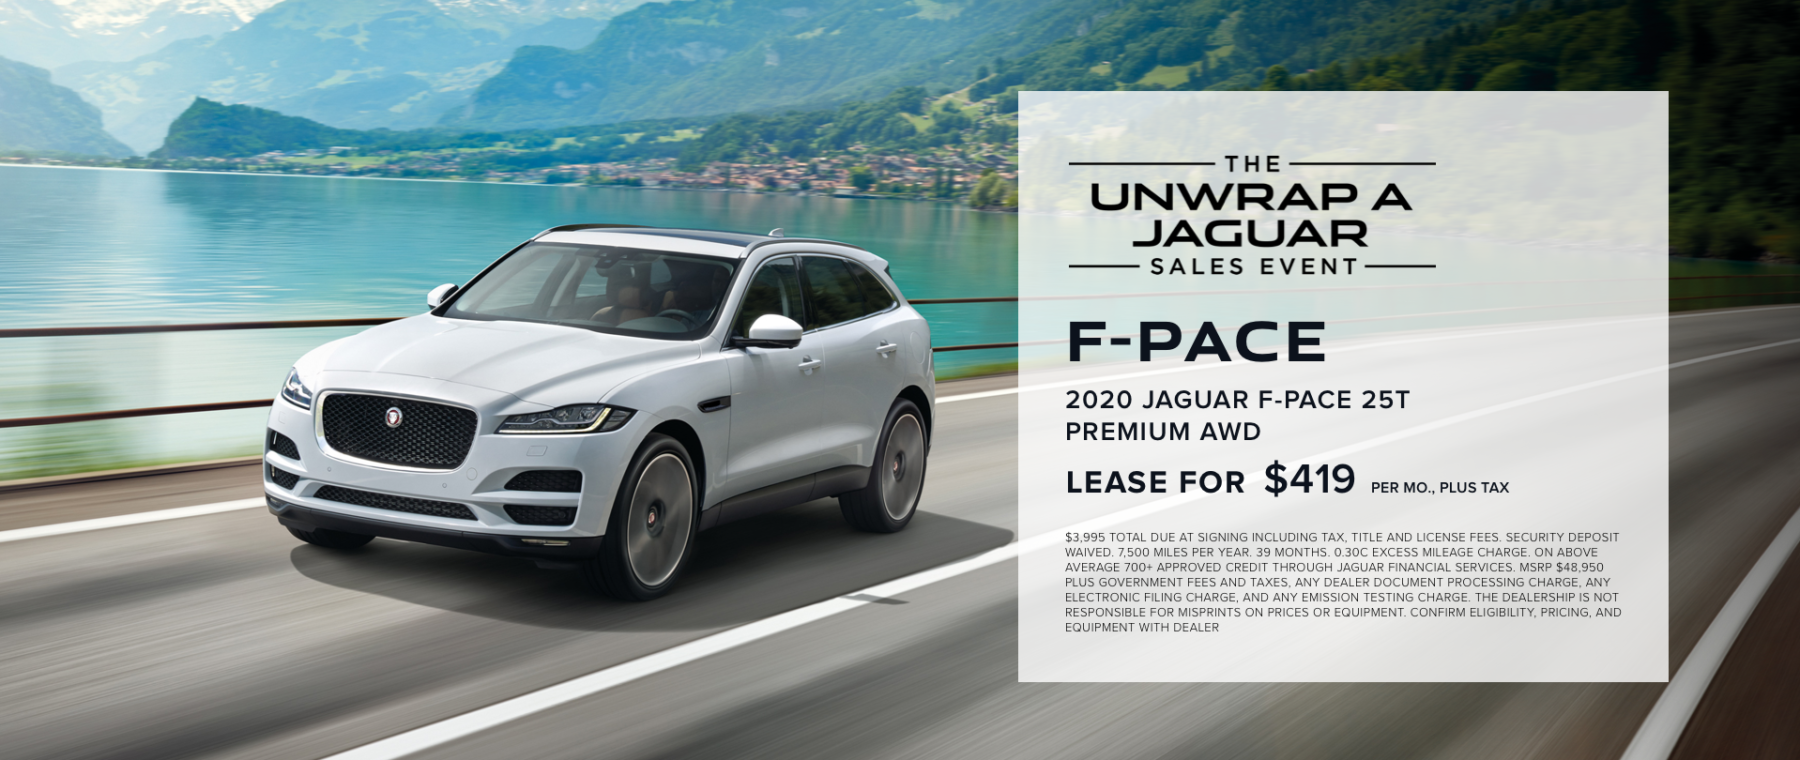 JNB-FPace-Special